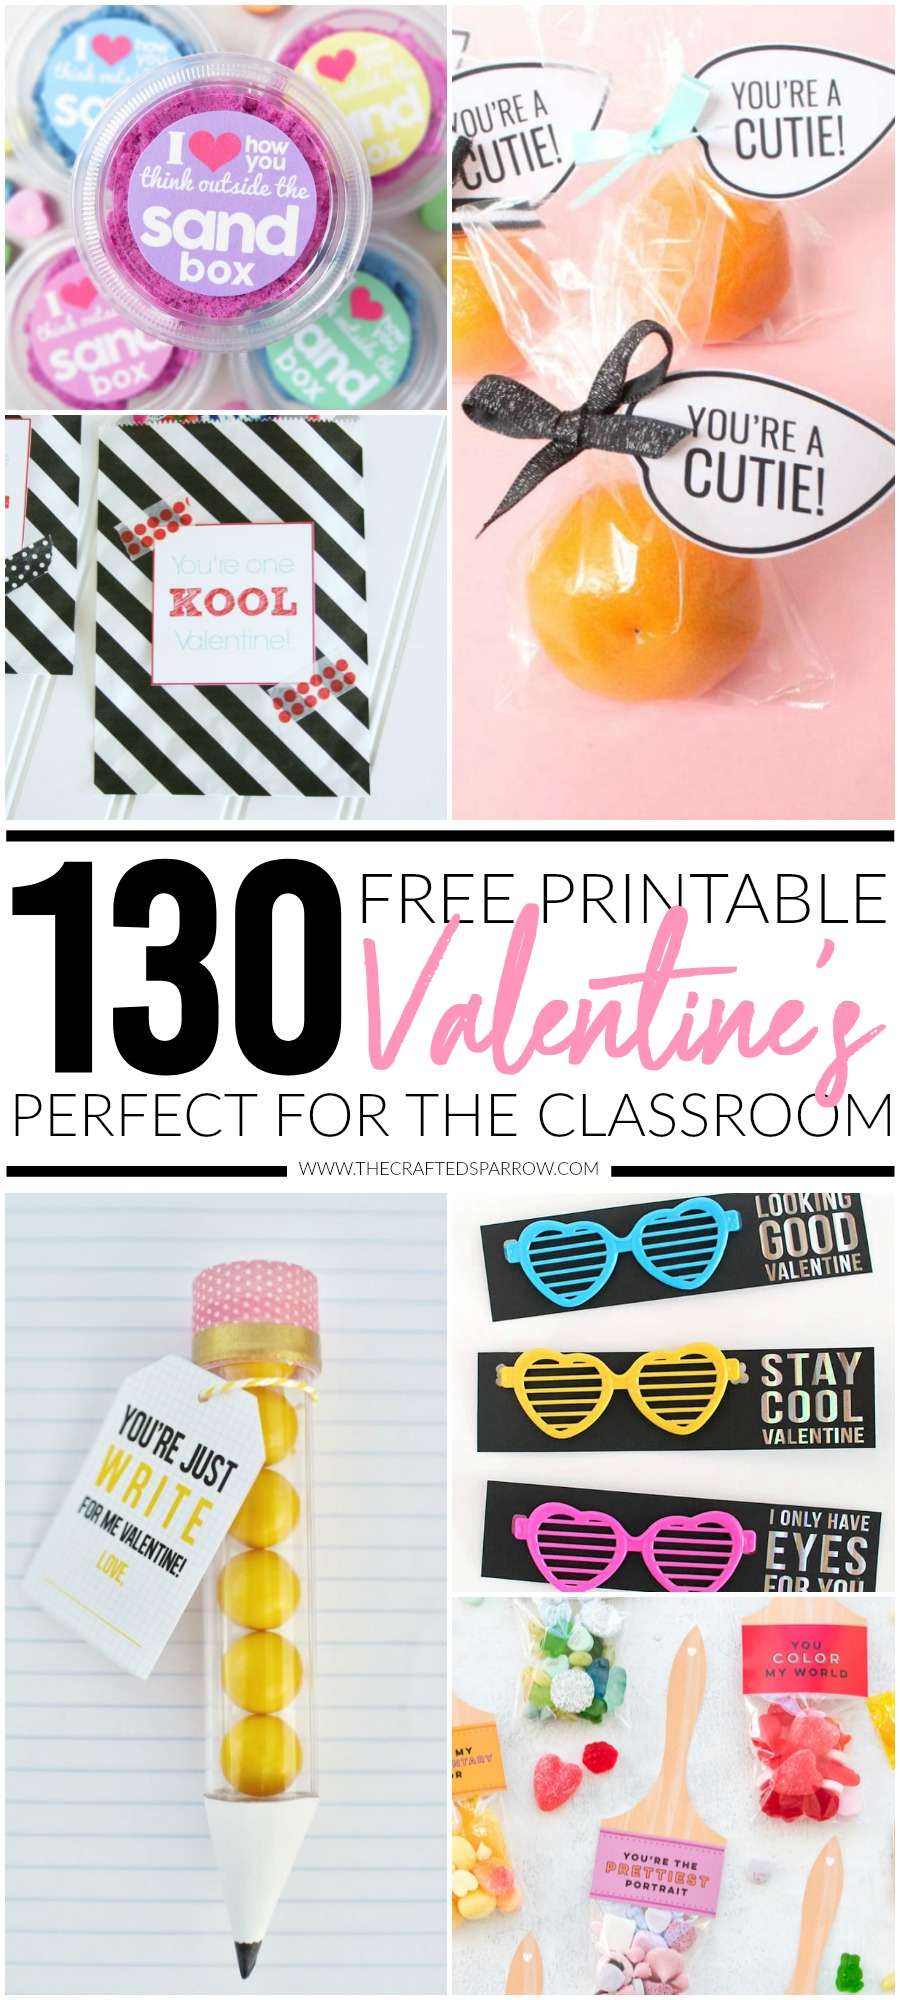 image about Printable Valentines Pictures called 130 Free of charge Printable Valentines for The Clroom